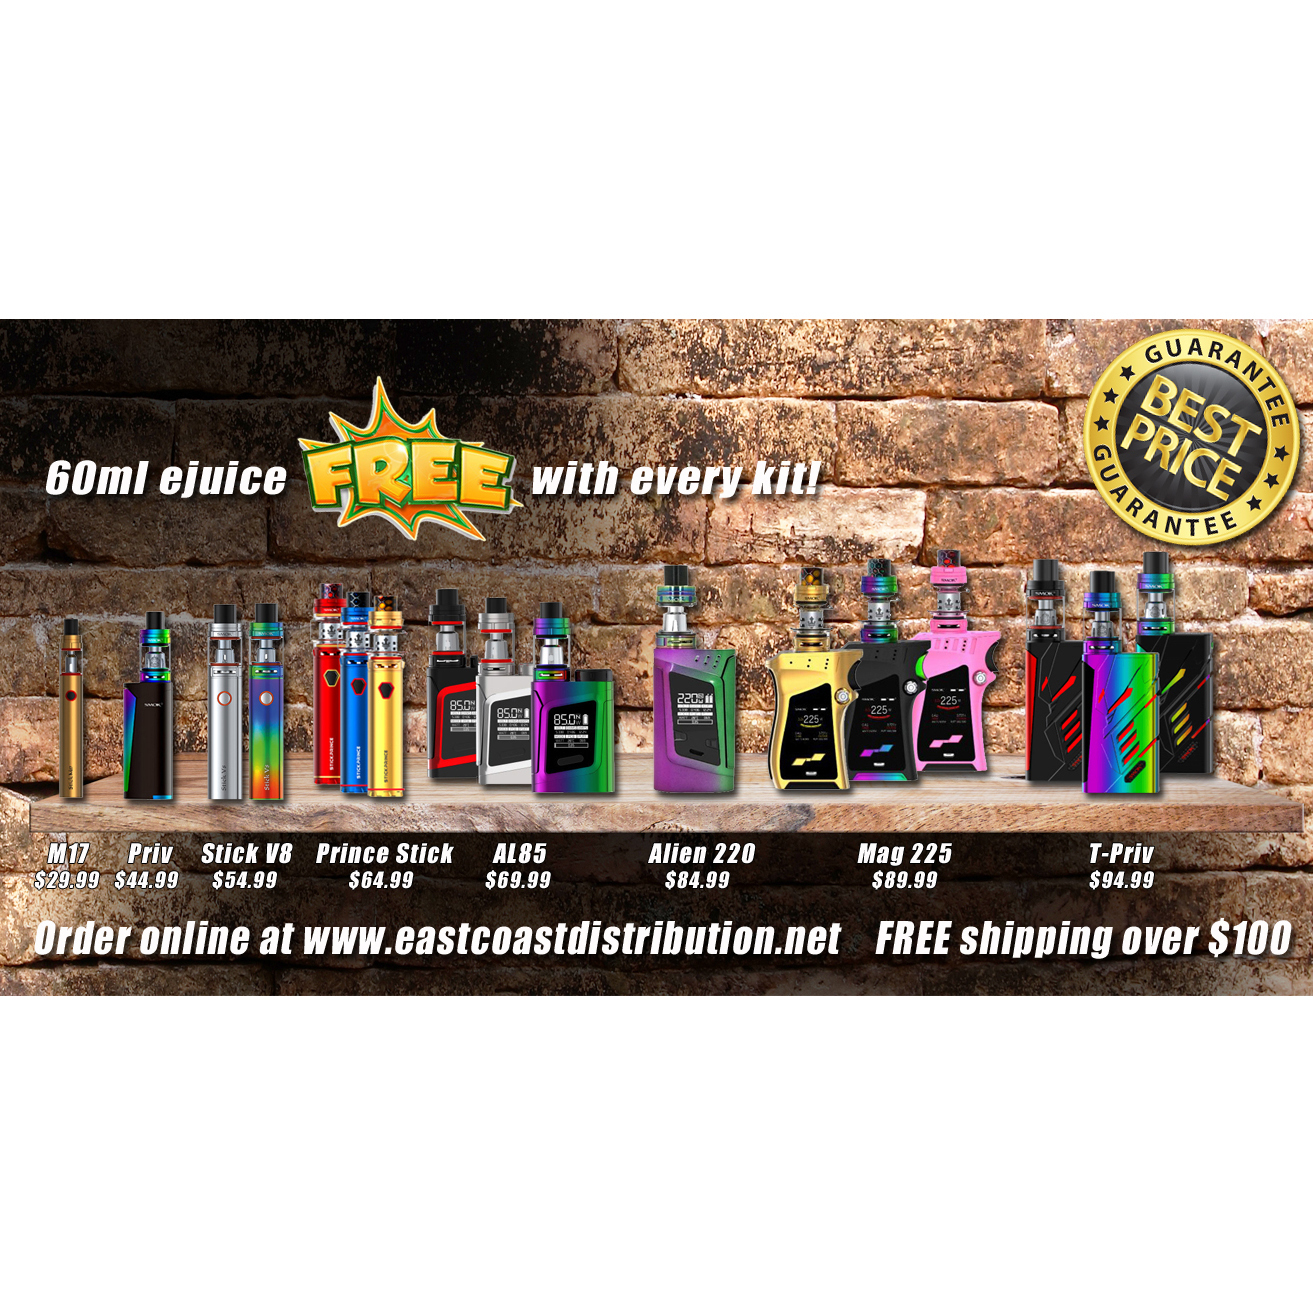 East Coast Distribution - VapeCity à St John's: Choose from a large variety of Vape kits from Smok. All kits come with a FREE 60ml eJuice your choice of brand and flavor.